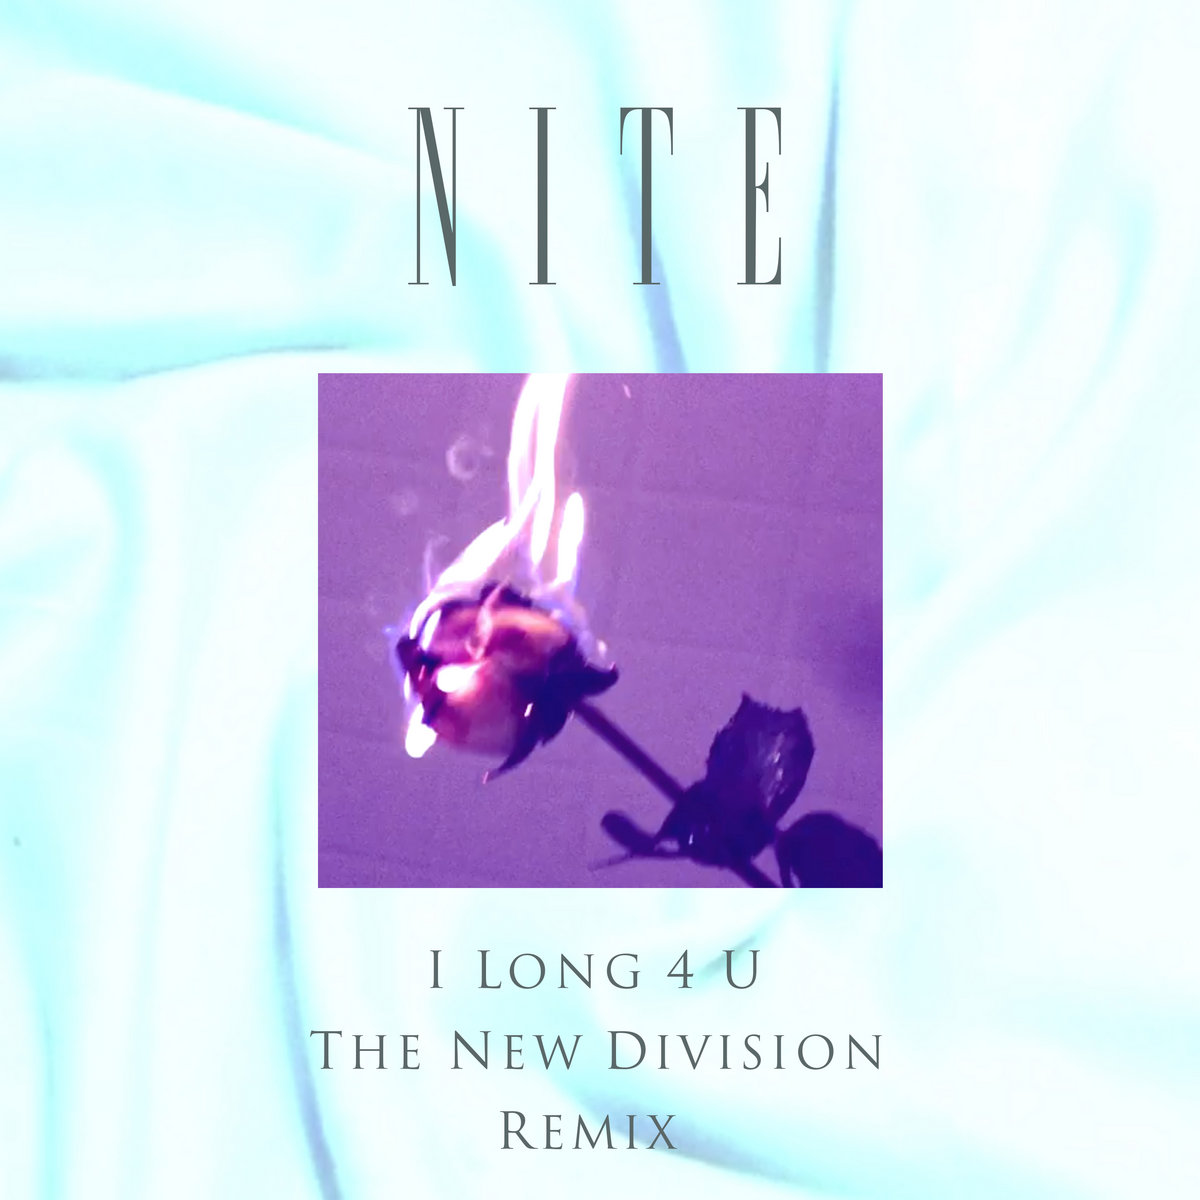 I Long 4 U (The New Division Remix) by Nite